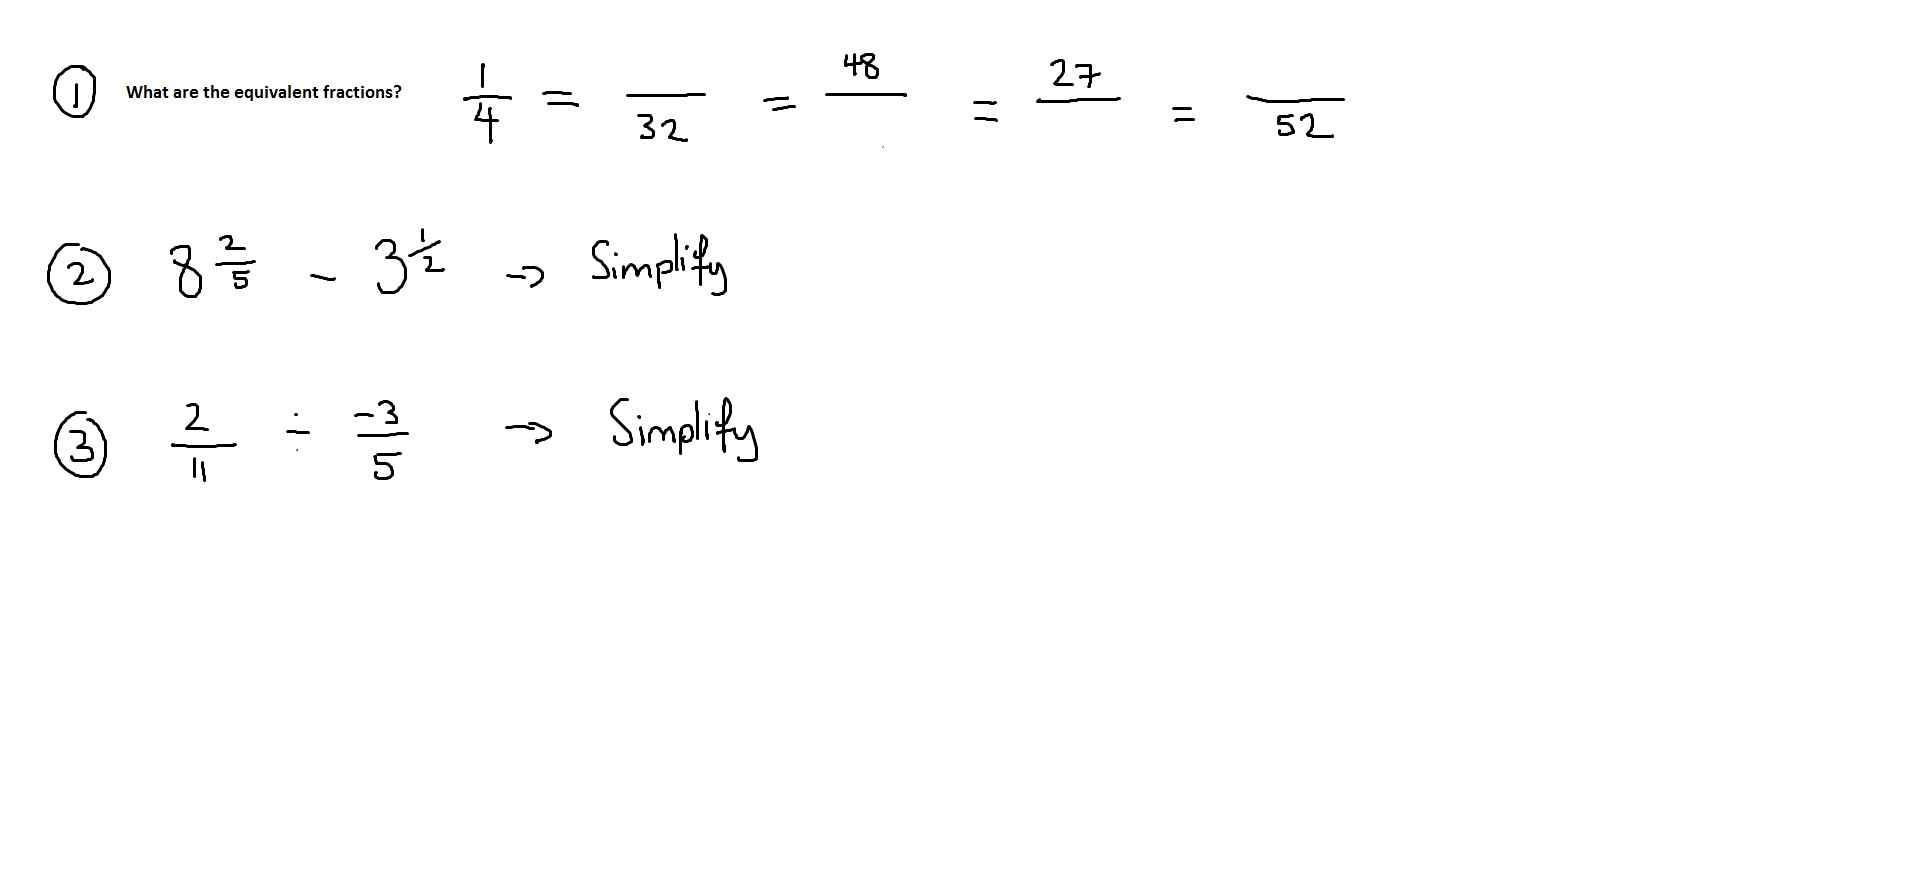 FRACTIONS QUESTIONS - 11th October